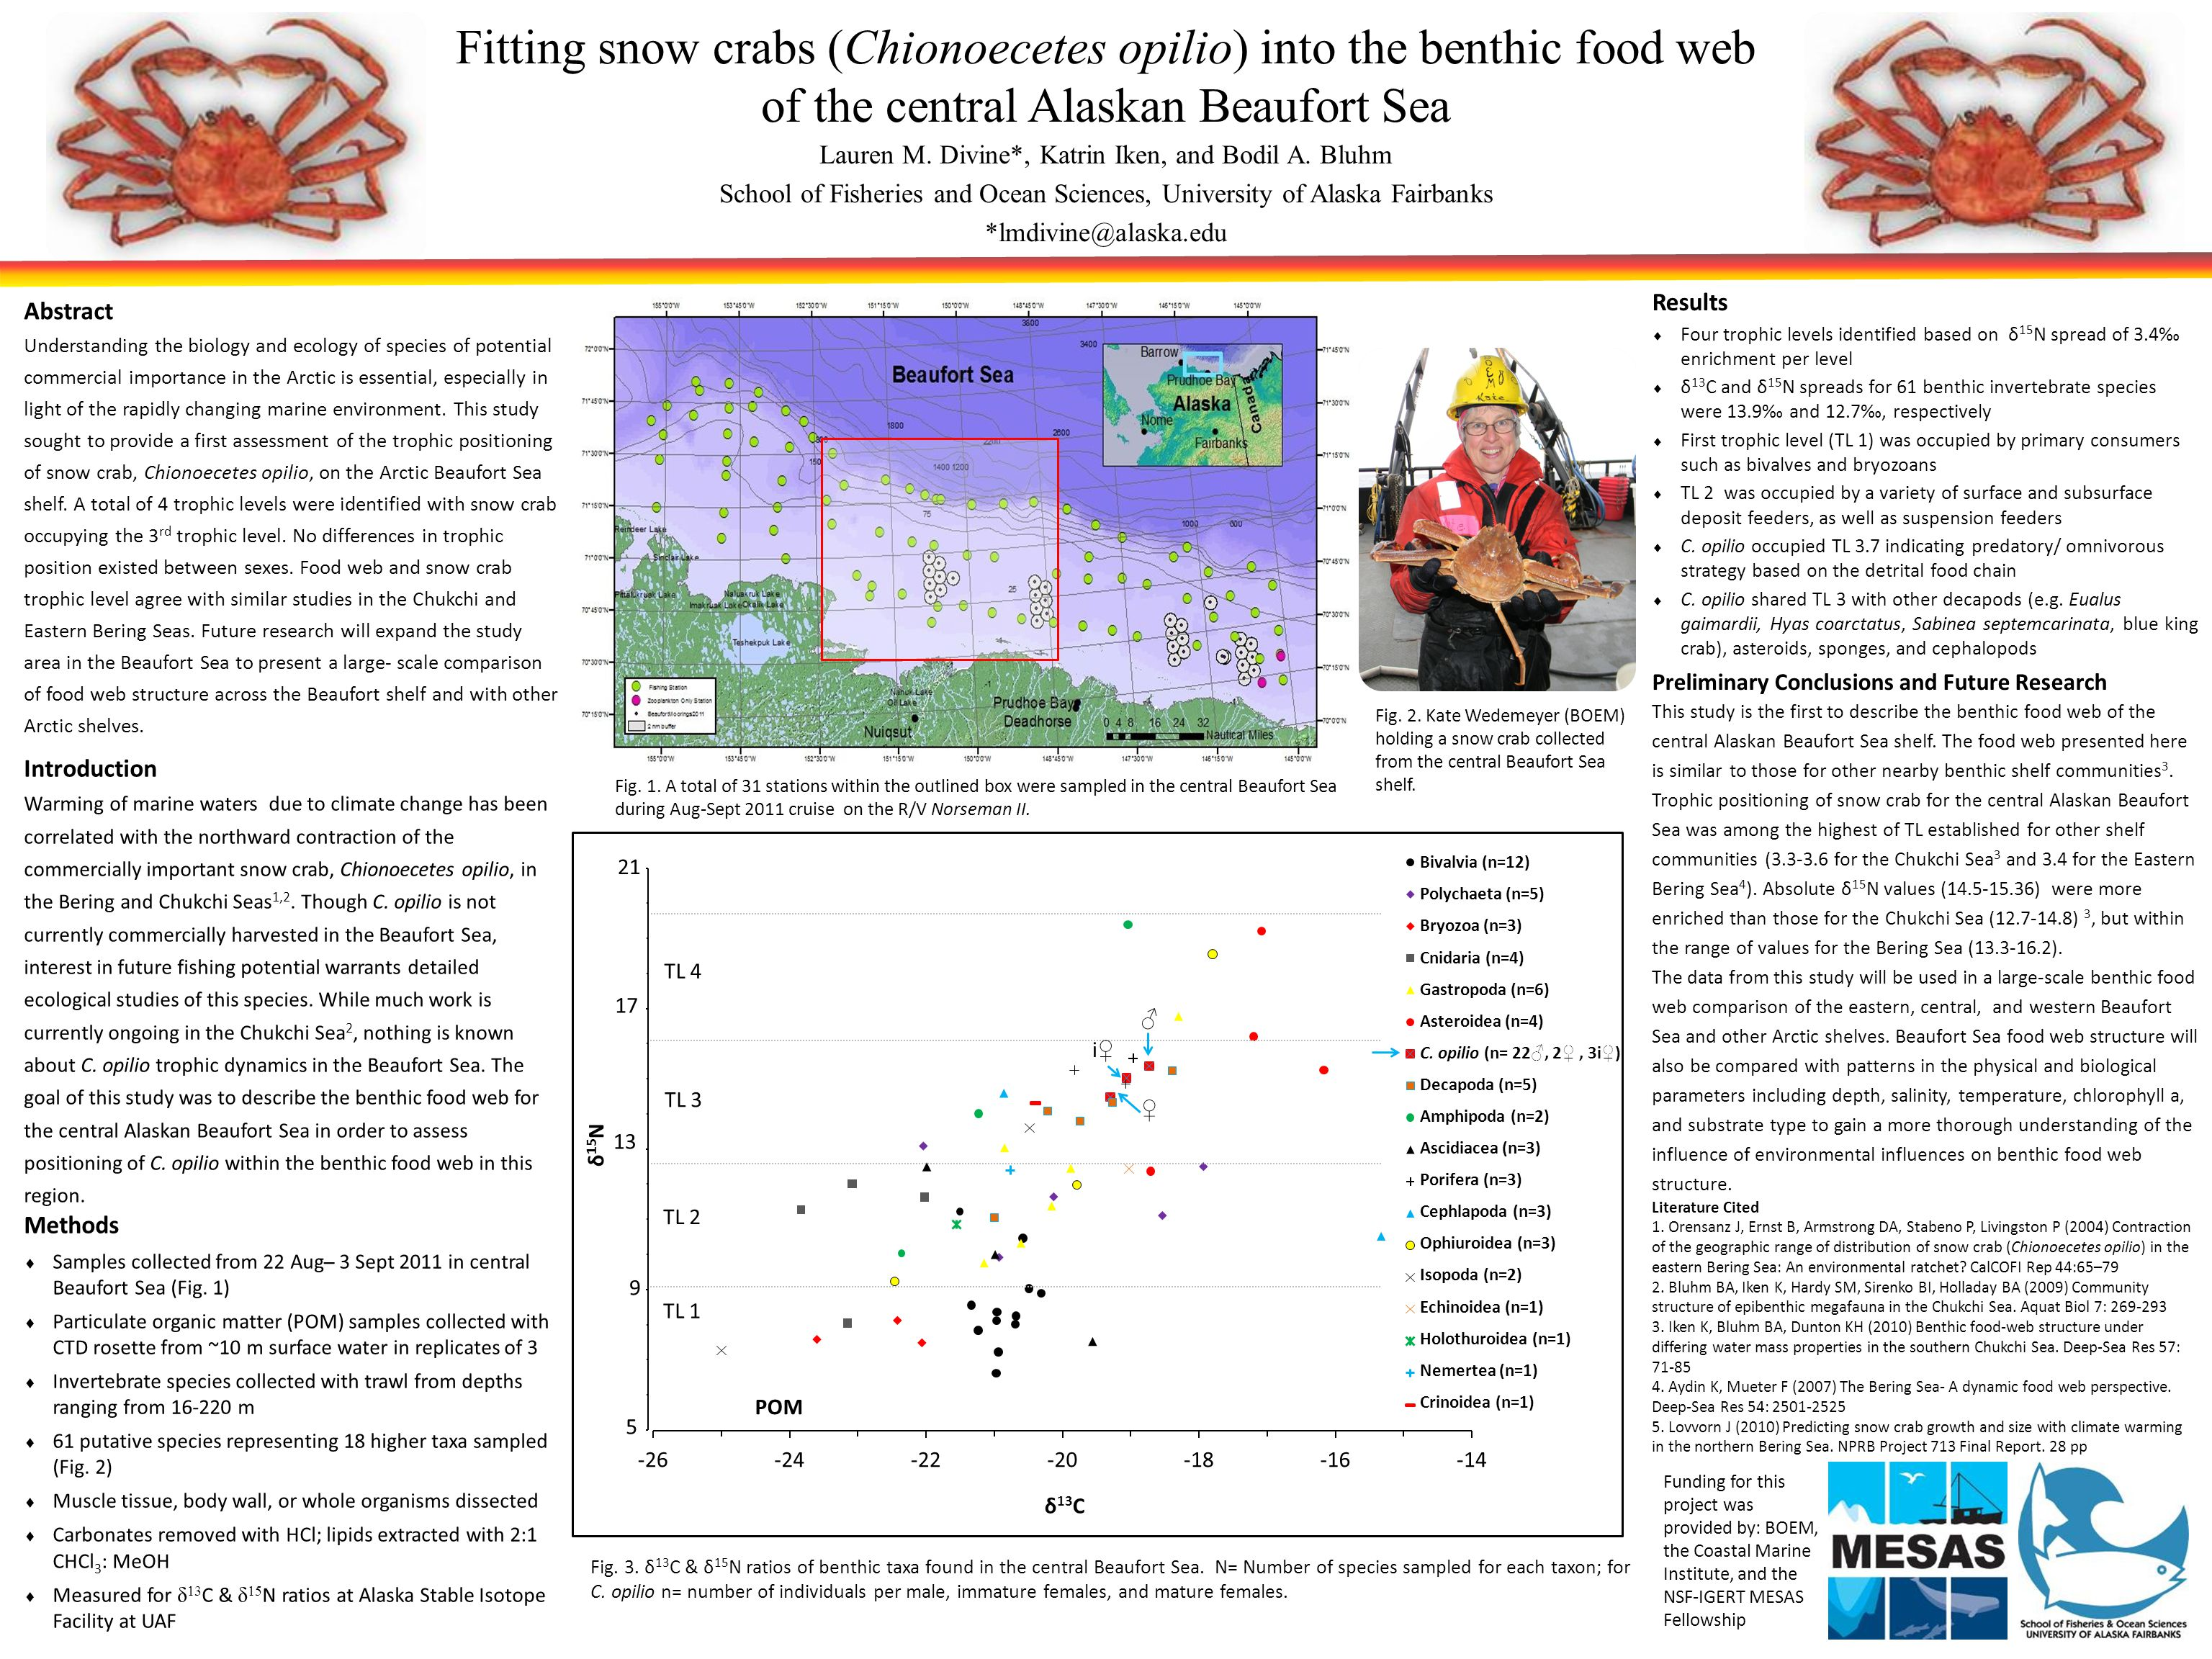 Fitting snow crabs (Chionoecetes opilio) into the benthic food web of the central Alaskan Beaufort Sea Lauren M.